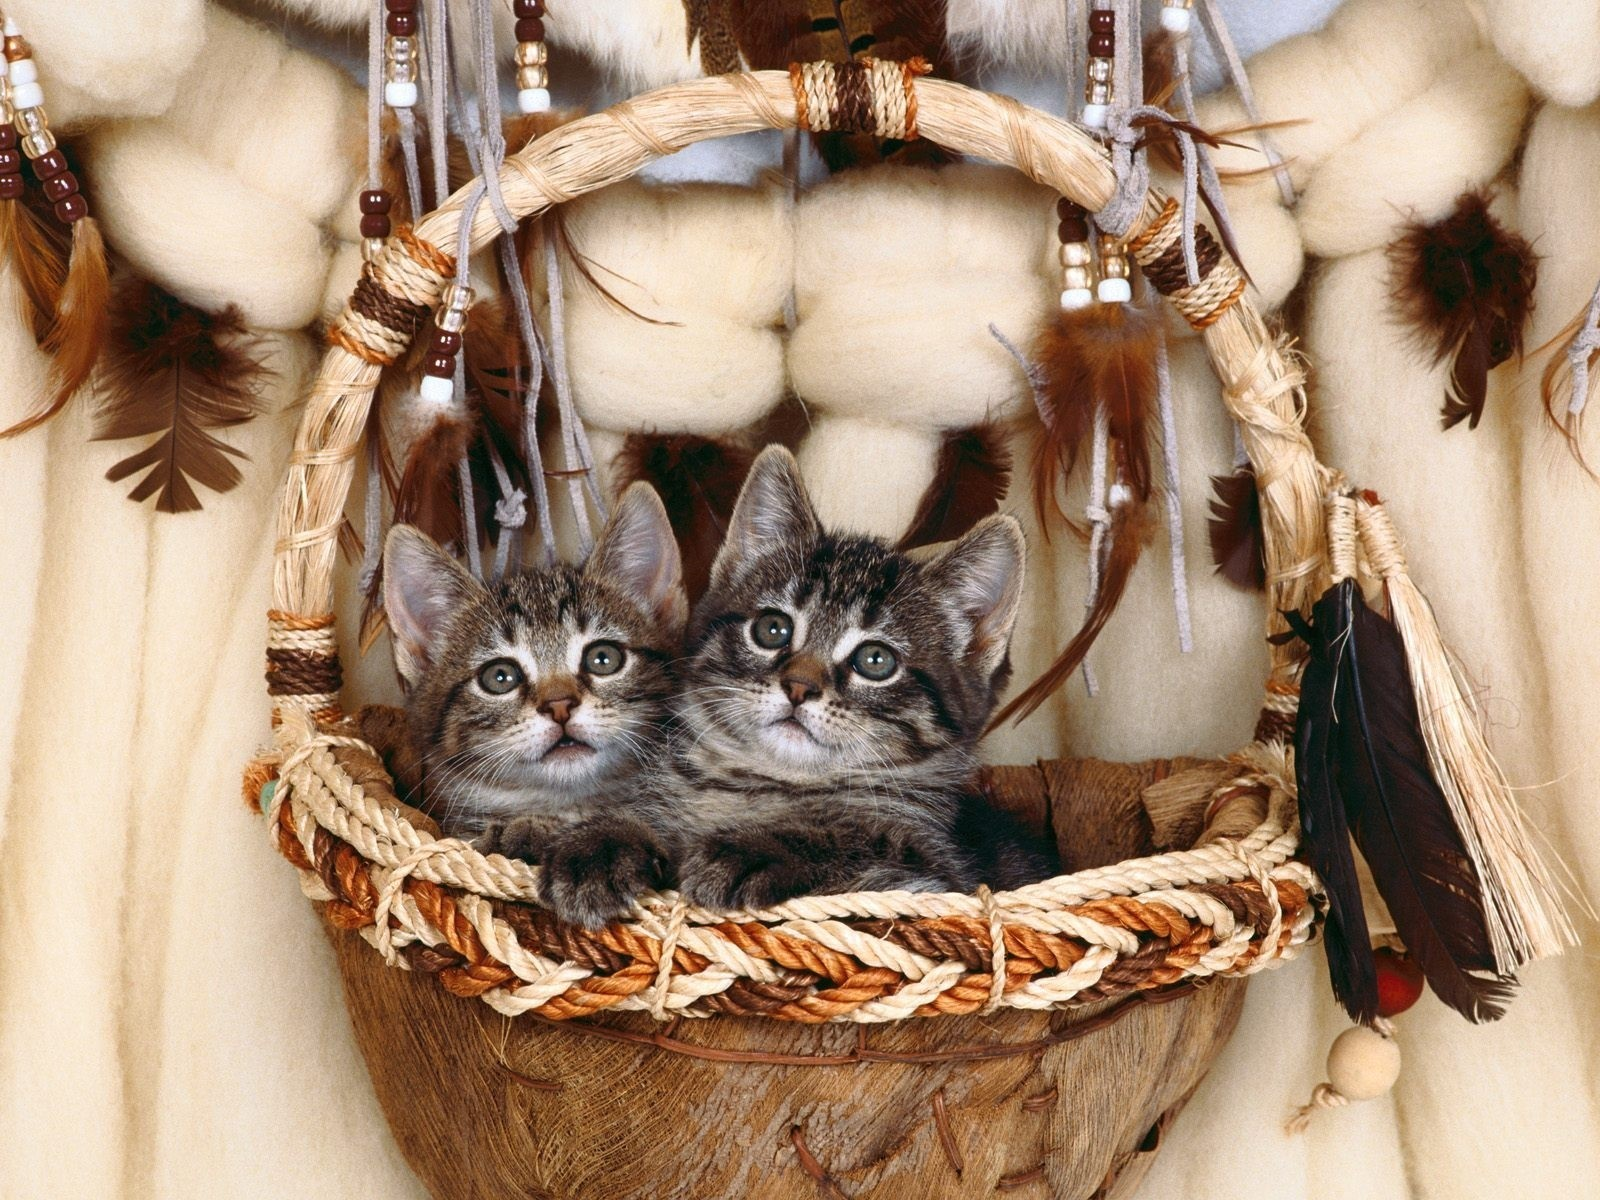 cats feathers Kittens baskets HD Wallpaper